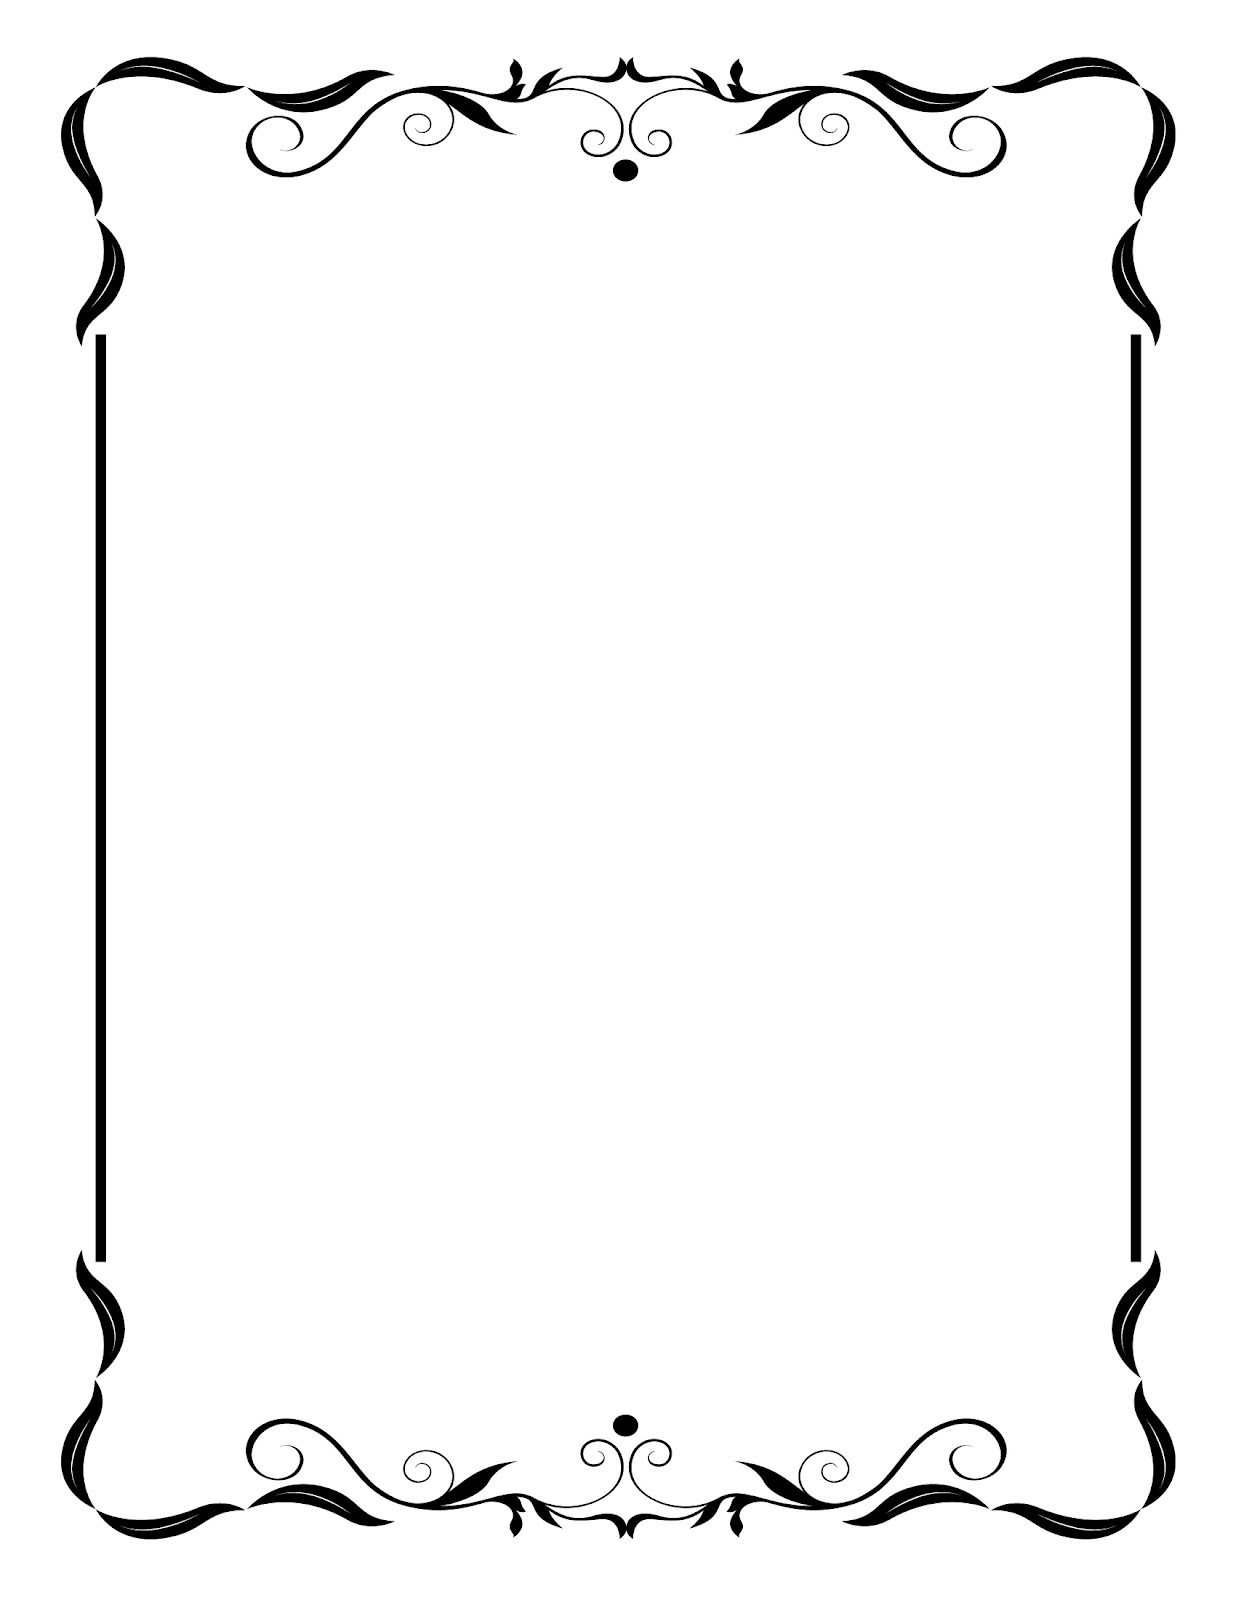 Simple Frame - ClipArt Best